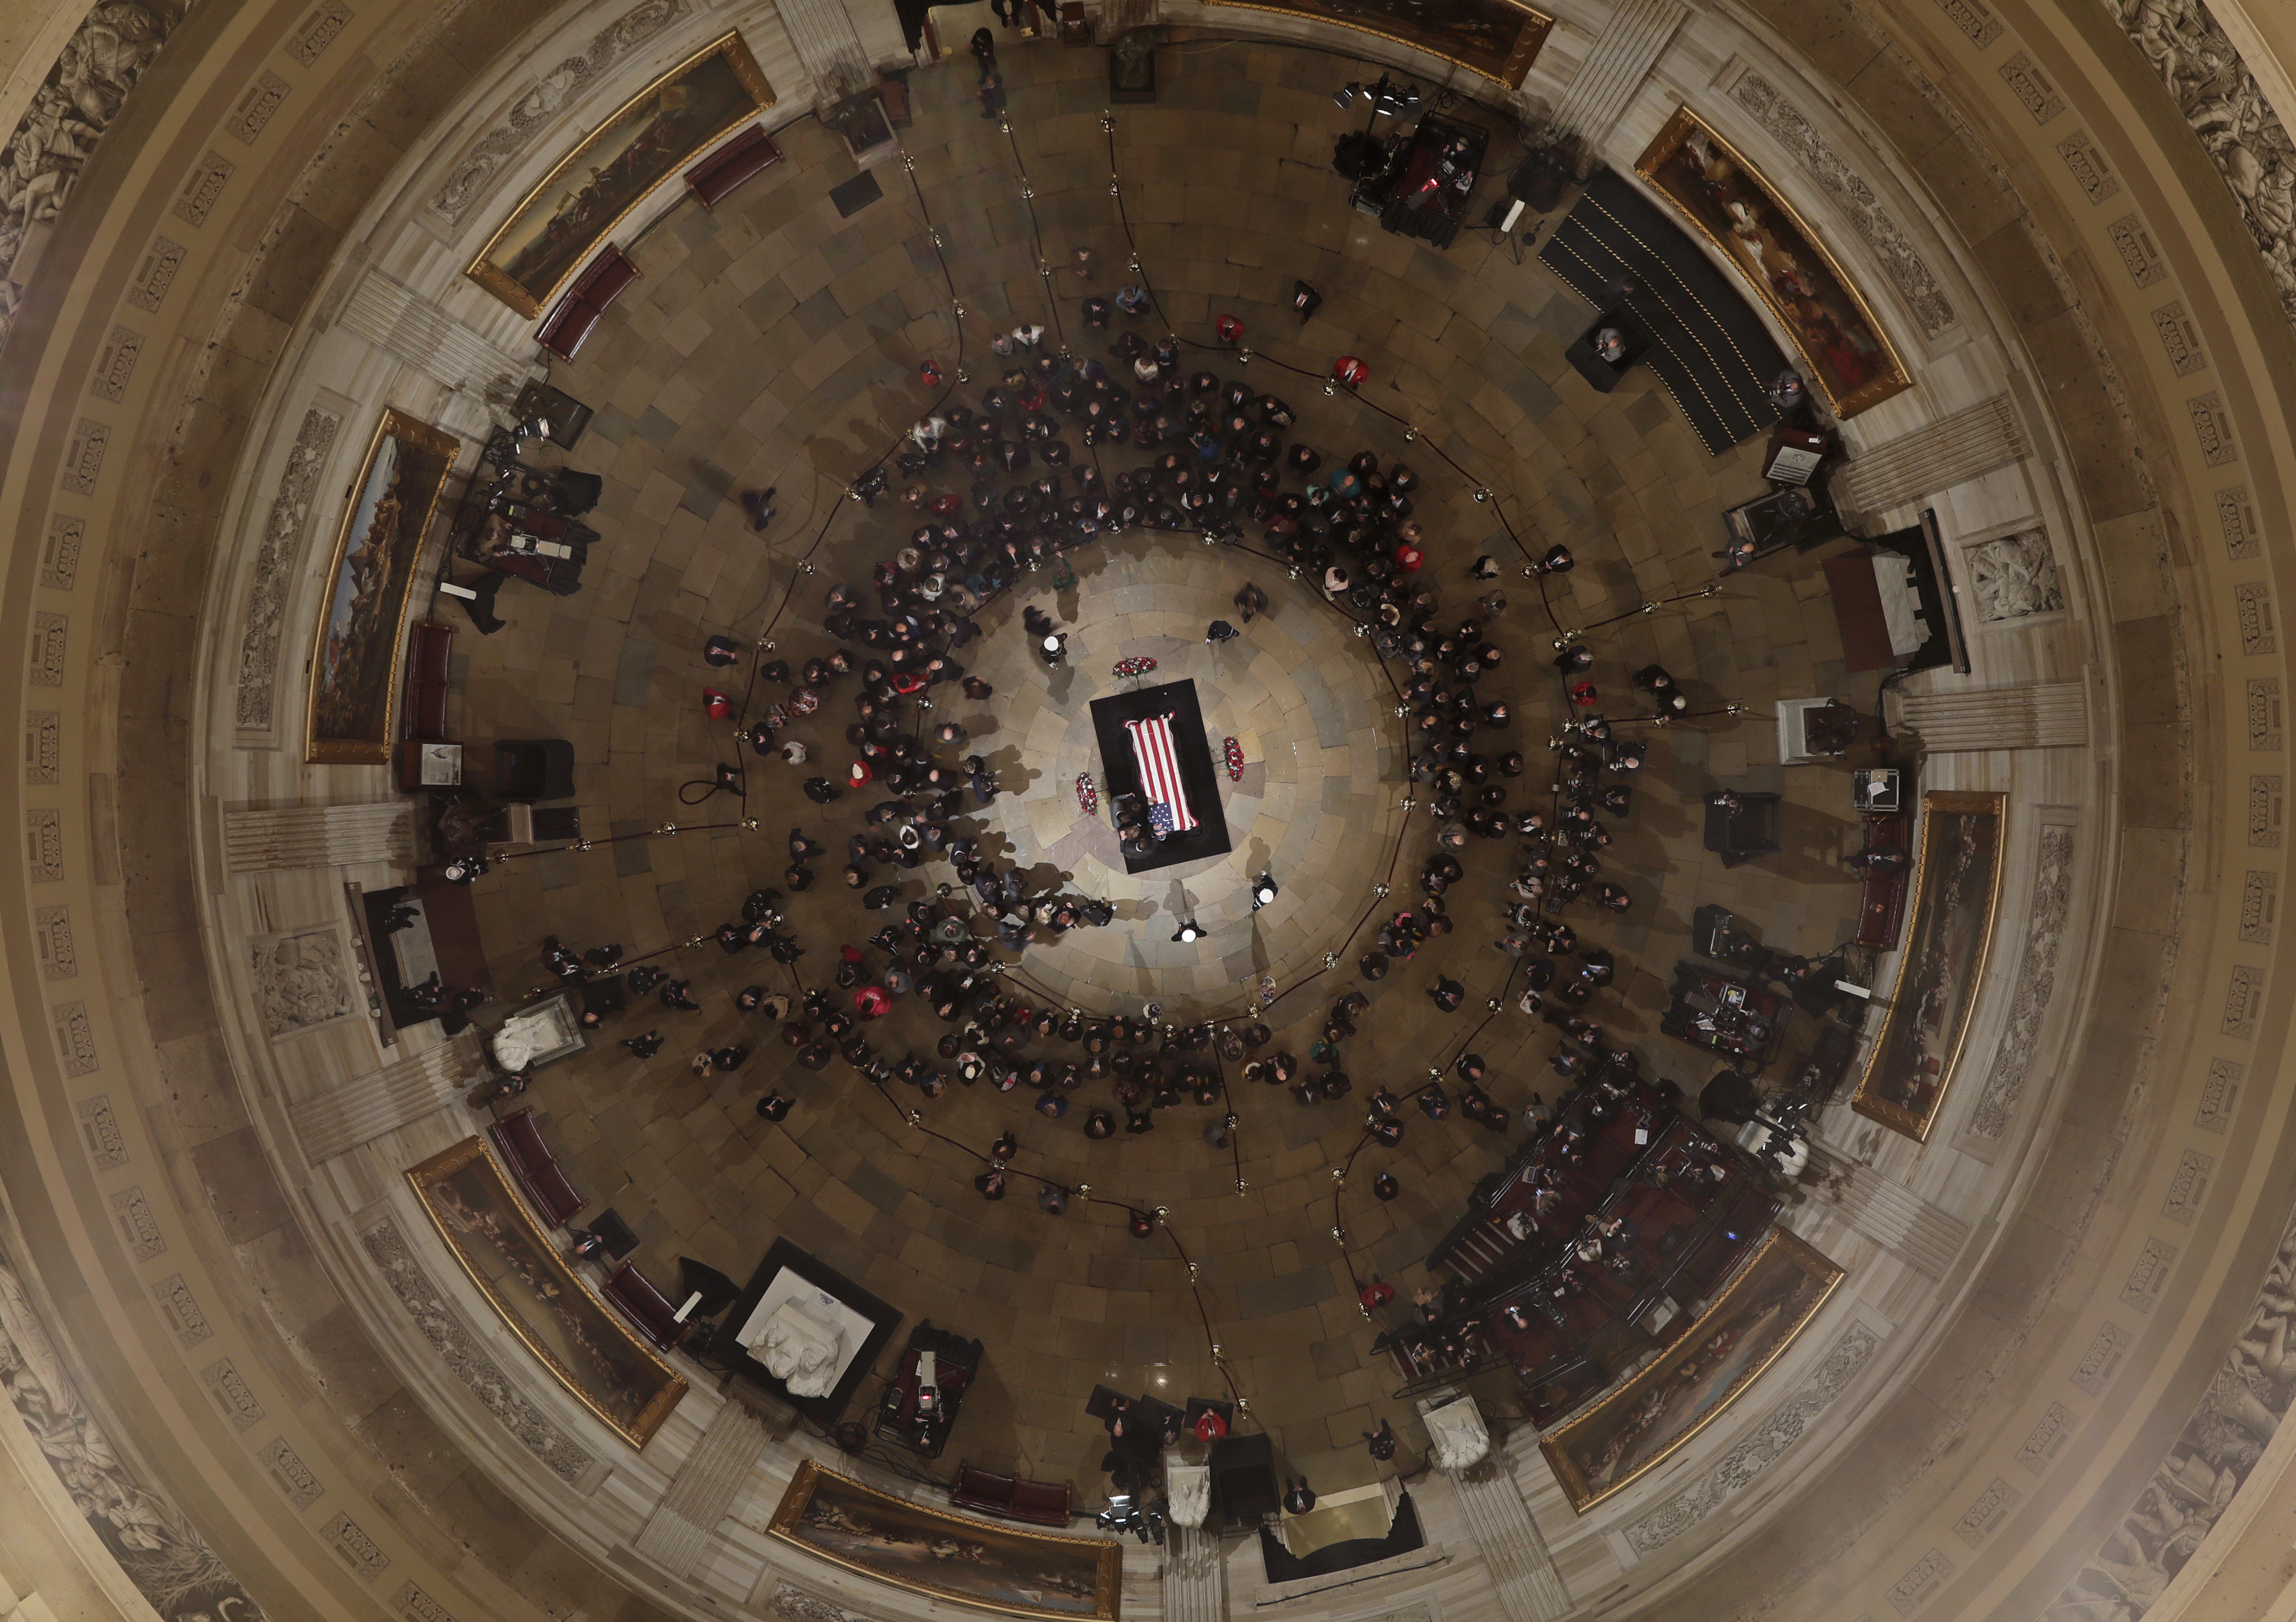 Members of the Bush family gather near the casket of Former President George H. W. Bush as he lies in state in the U.S. Capitol Rotunda Tuesday, Dec. 4, 2018, in Washington. (AP Photo/Morry Gash, Pool)